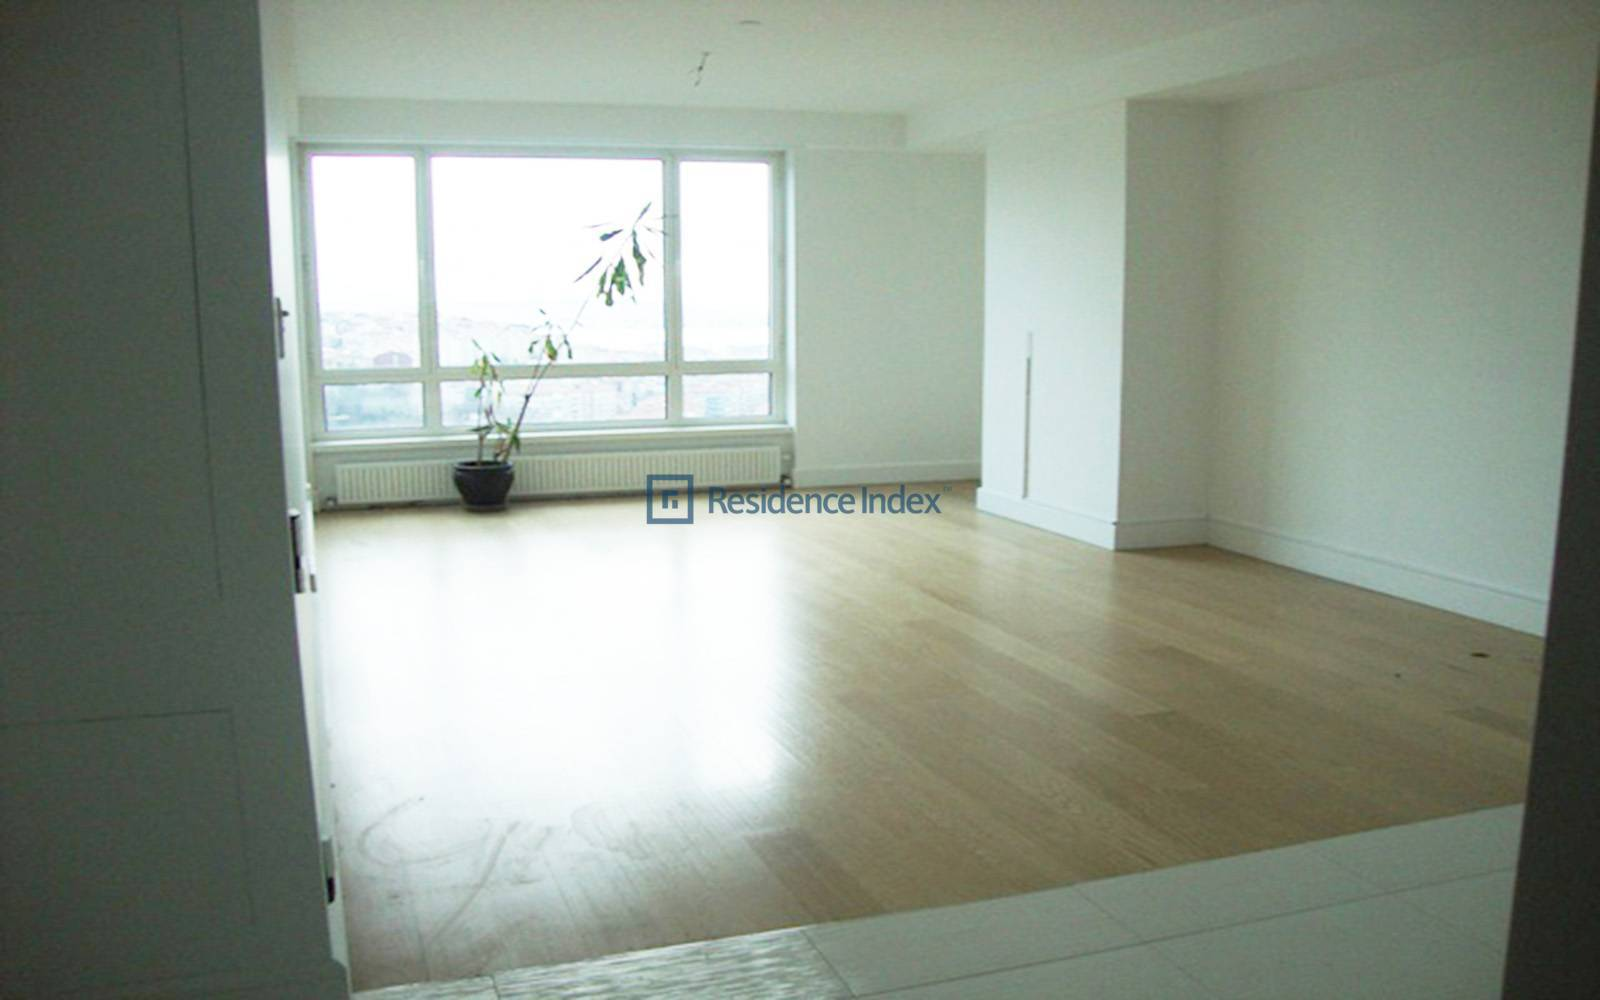 Selenium Twins - 1 + 1 For Rent in a Central Location